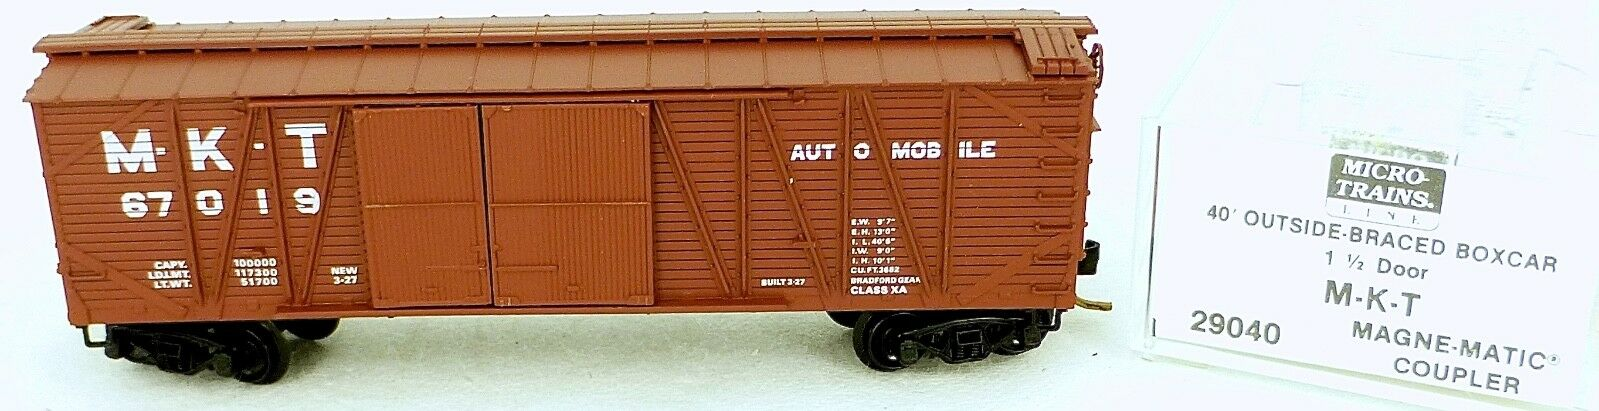 40´ outside Boxcar Missouri Kansas T 67019 Micro Trains Line 29040 N 1 160 C Å